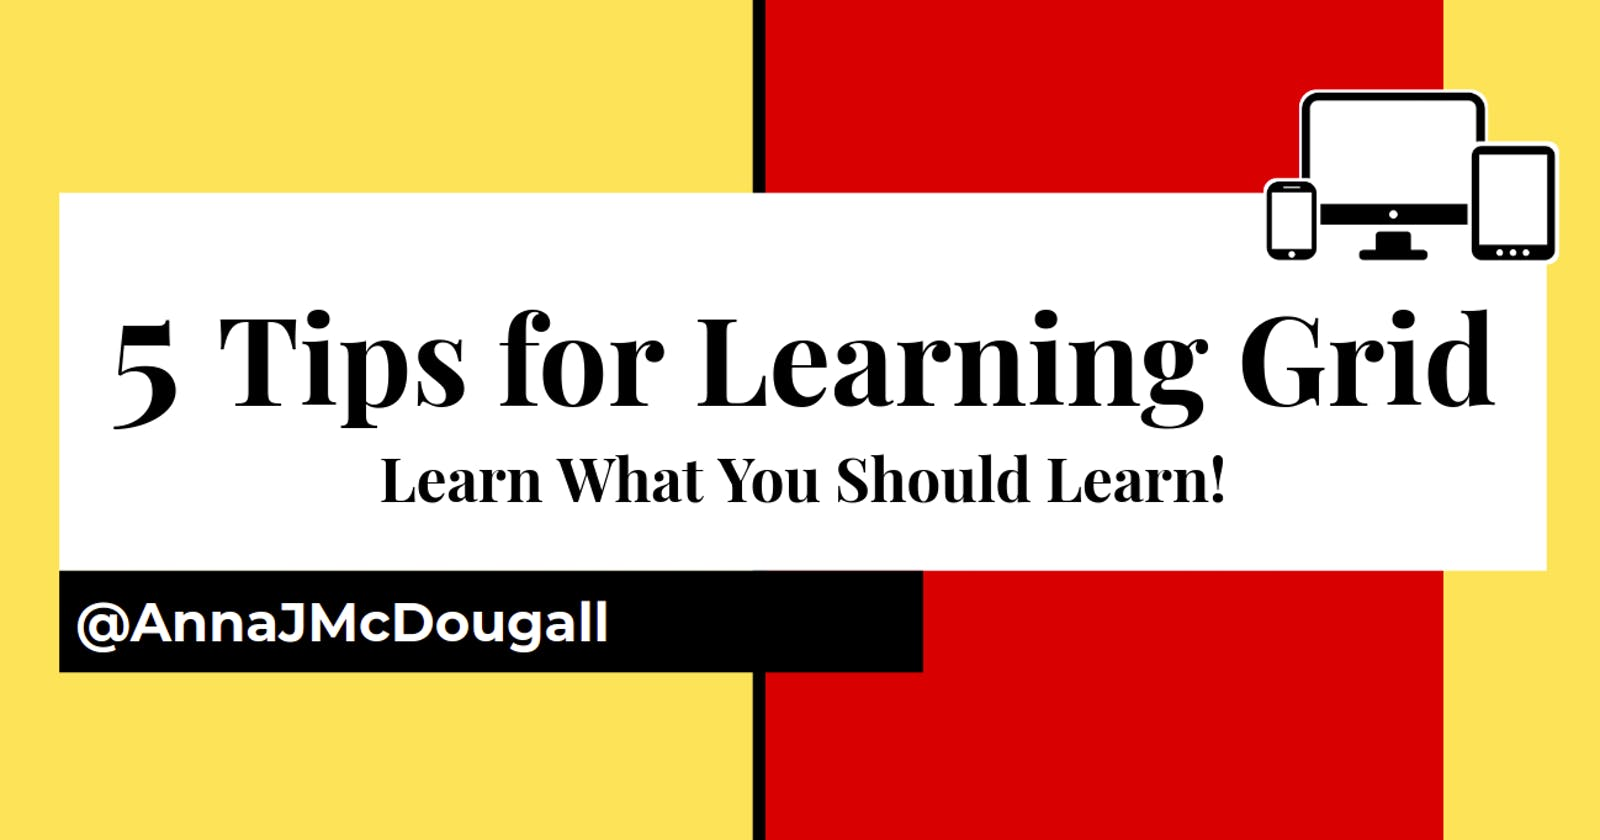 5 Tips for Learning Grid